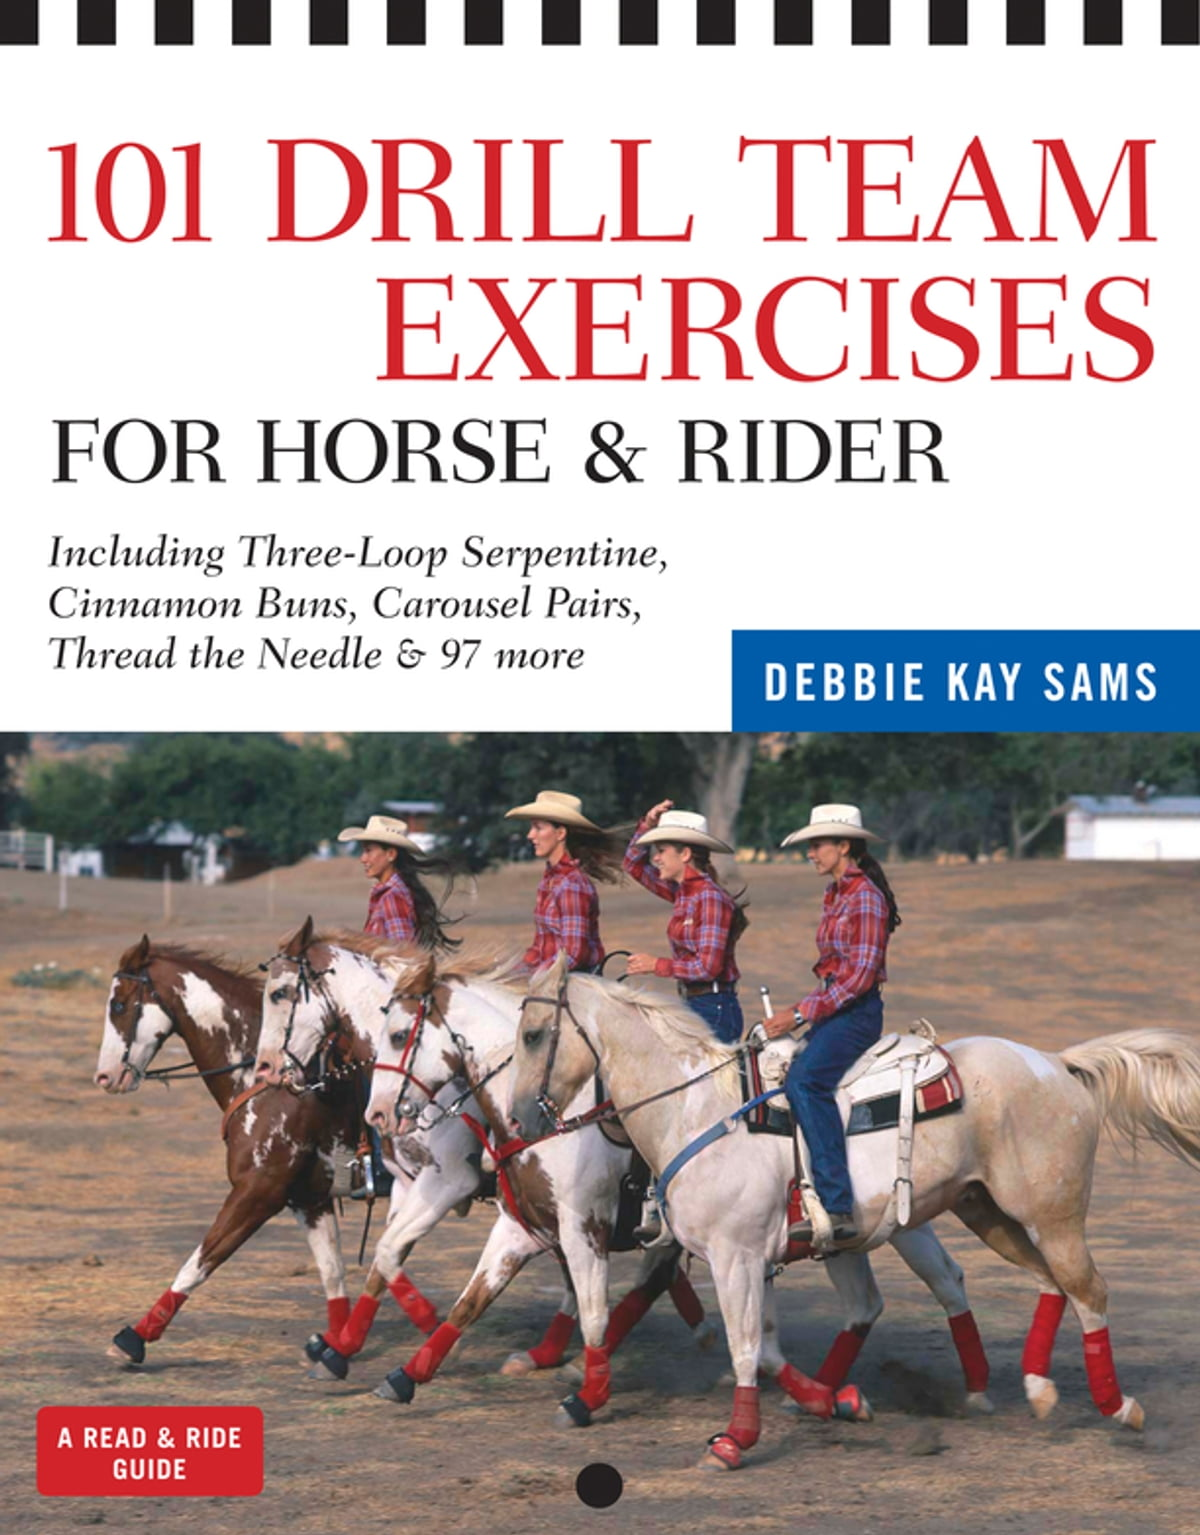 101 Drill Team Exercises for Horse & Rider eBook by Debbie Kay Sams -  9781603420440 | Rakuten Kobo